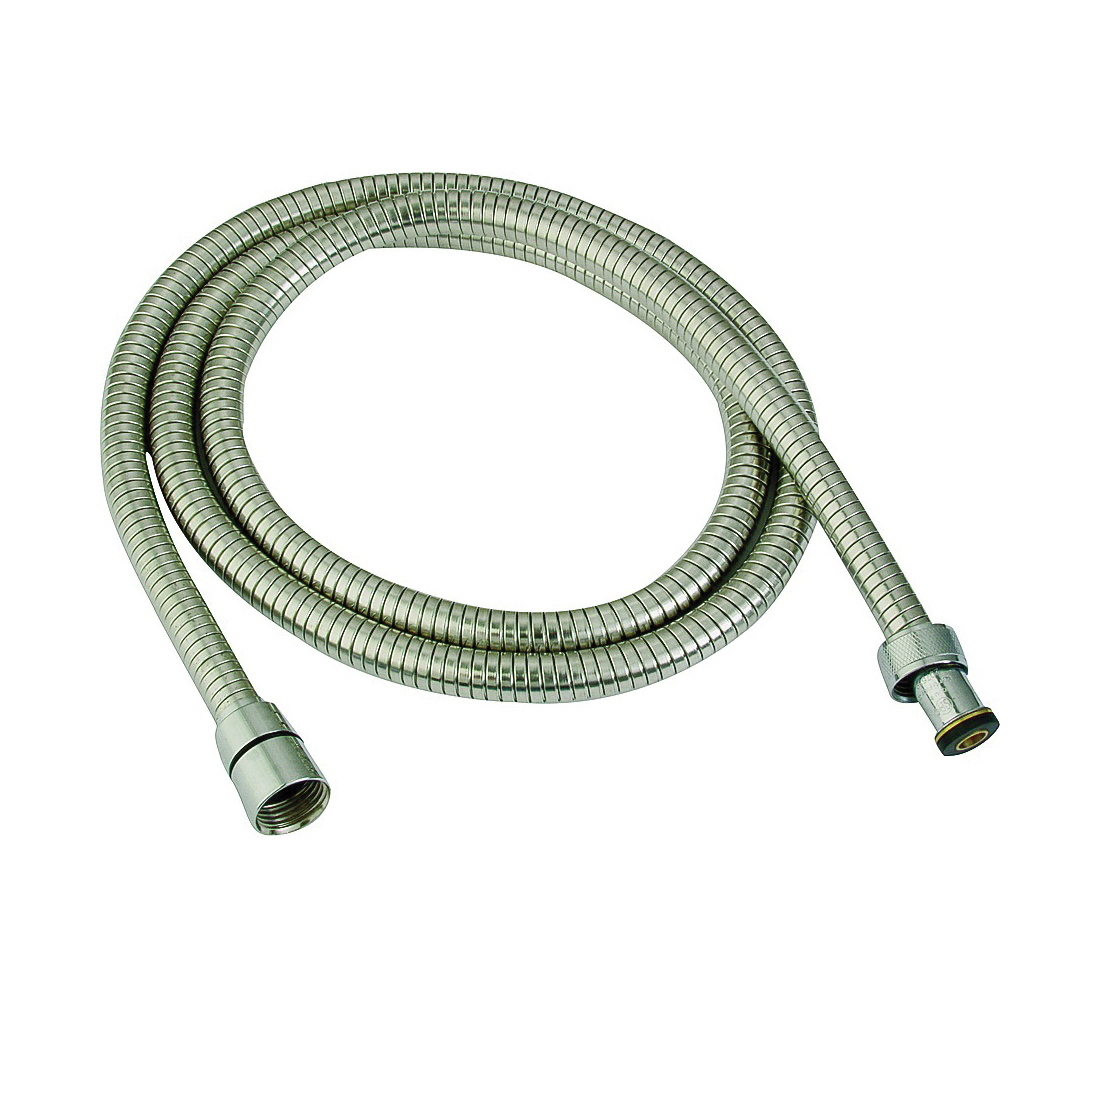 Picture of Whedon AF205C Shower Hose, 1/2 in Connection, Female, 59 to 80 in L Hose, Stainless Steel, Chrome